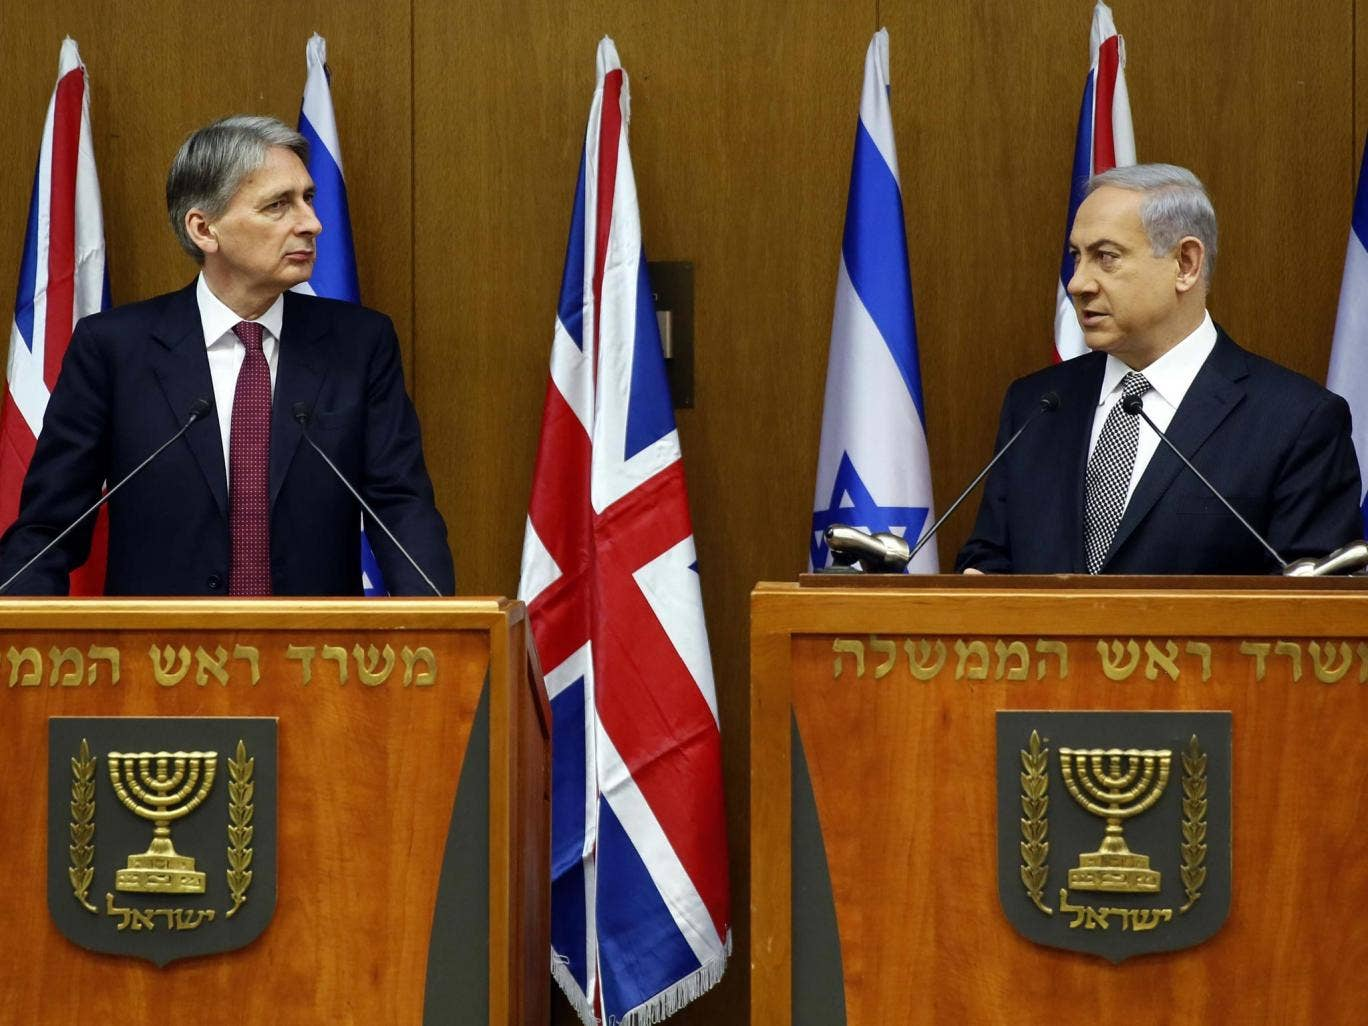 Benjamin Netanyahu (right) and Philip Hammond at the press conference in Jerusalem yesterday